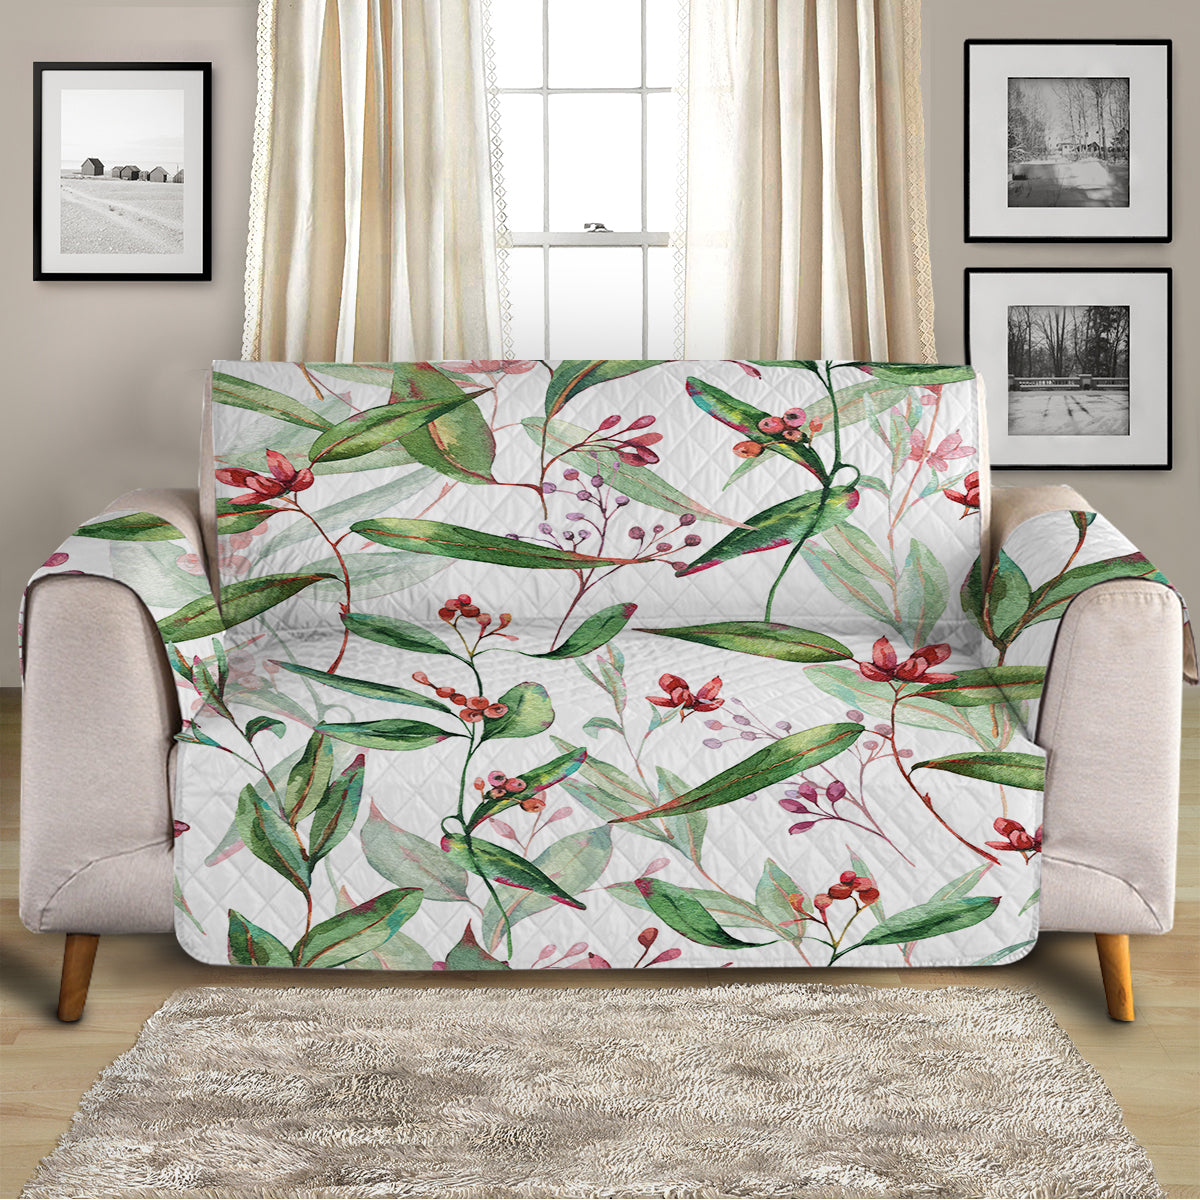 Tropical Delight Sofa Cover